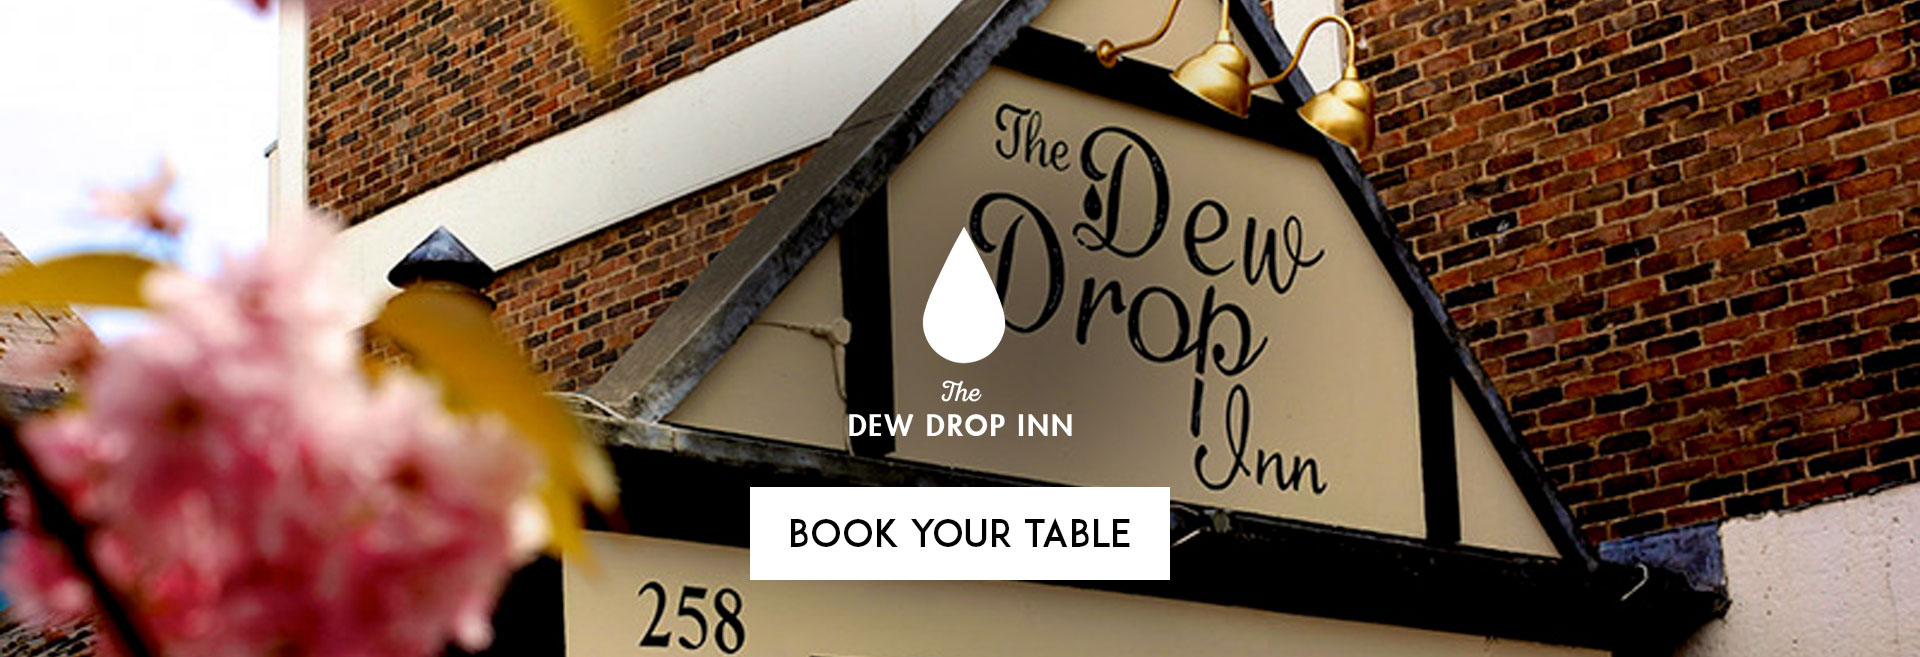 Book Your Table at Dewdrop